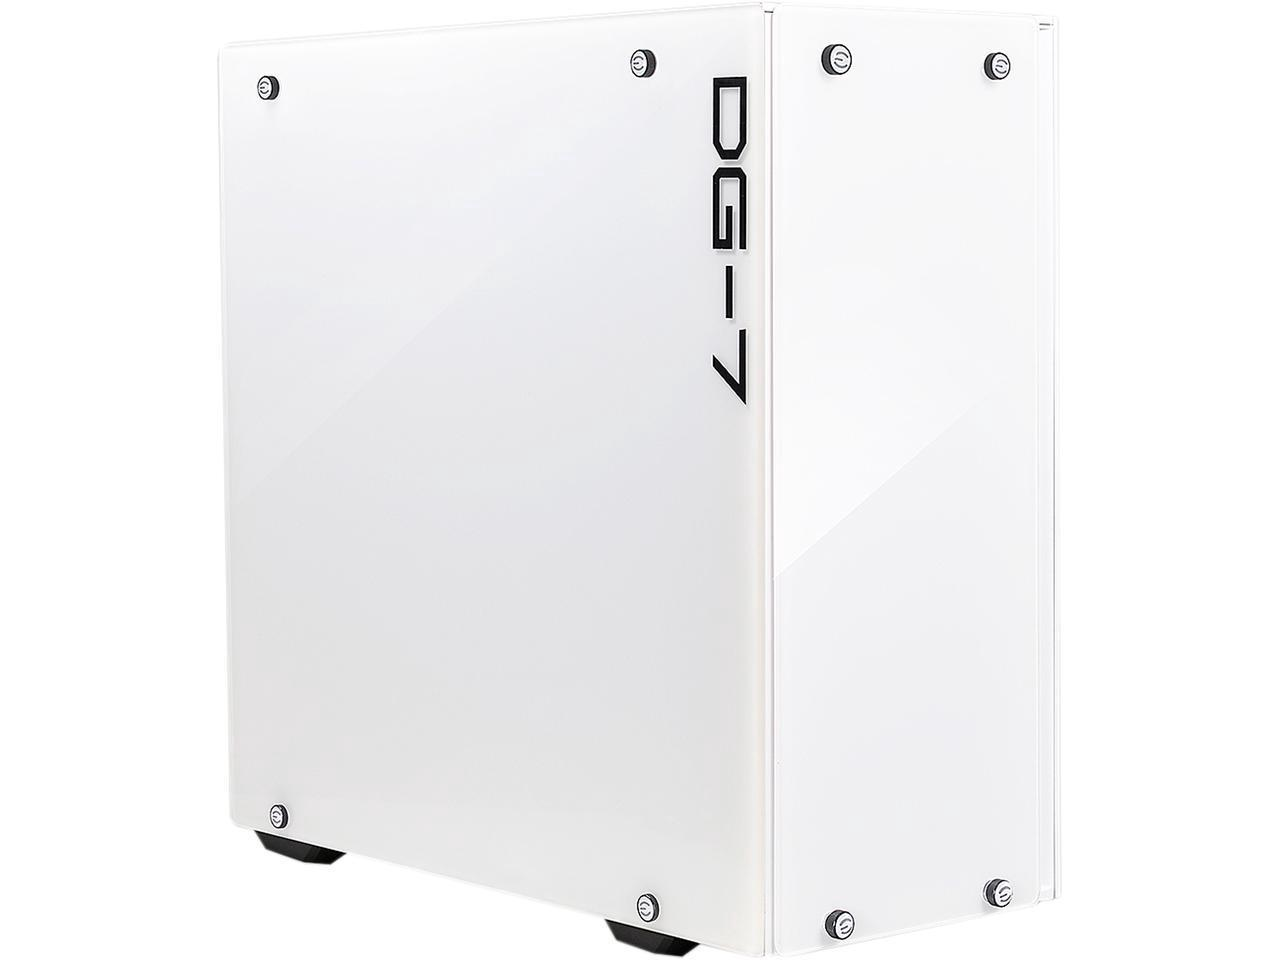 Корпус EVGA 156-F1-2022-KR DG-75 Alpine White MID-Tower, 2 Sides of tempered glass